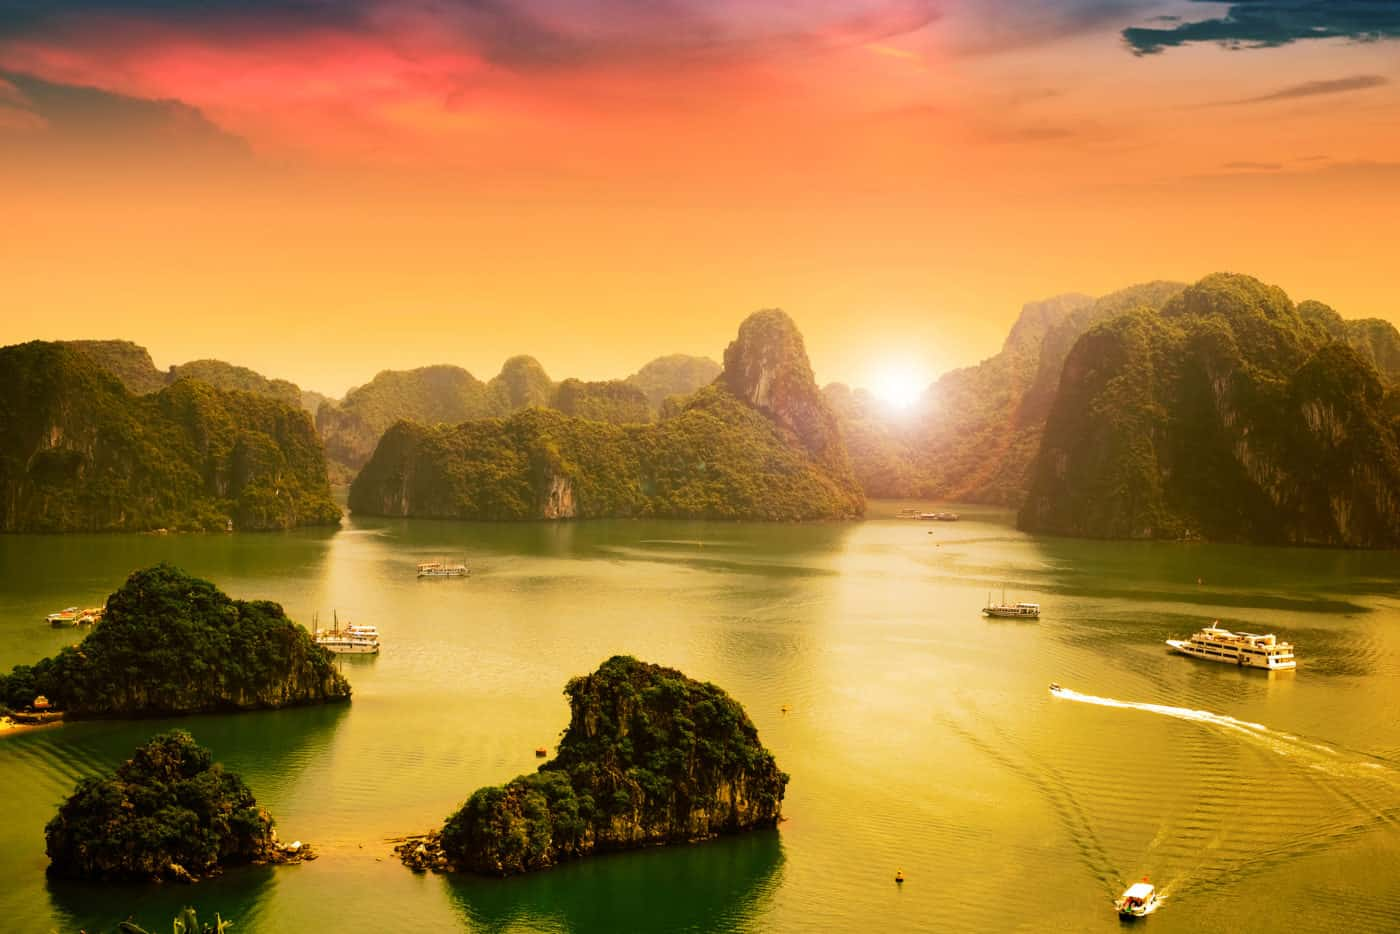 Sun setting over the mountains in Ha Long Bay